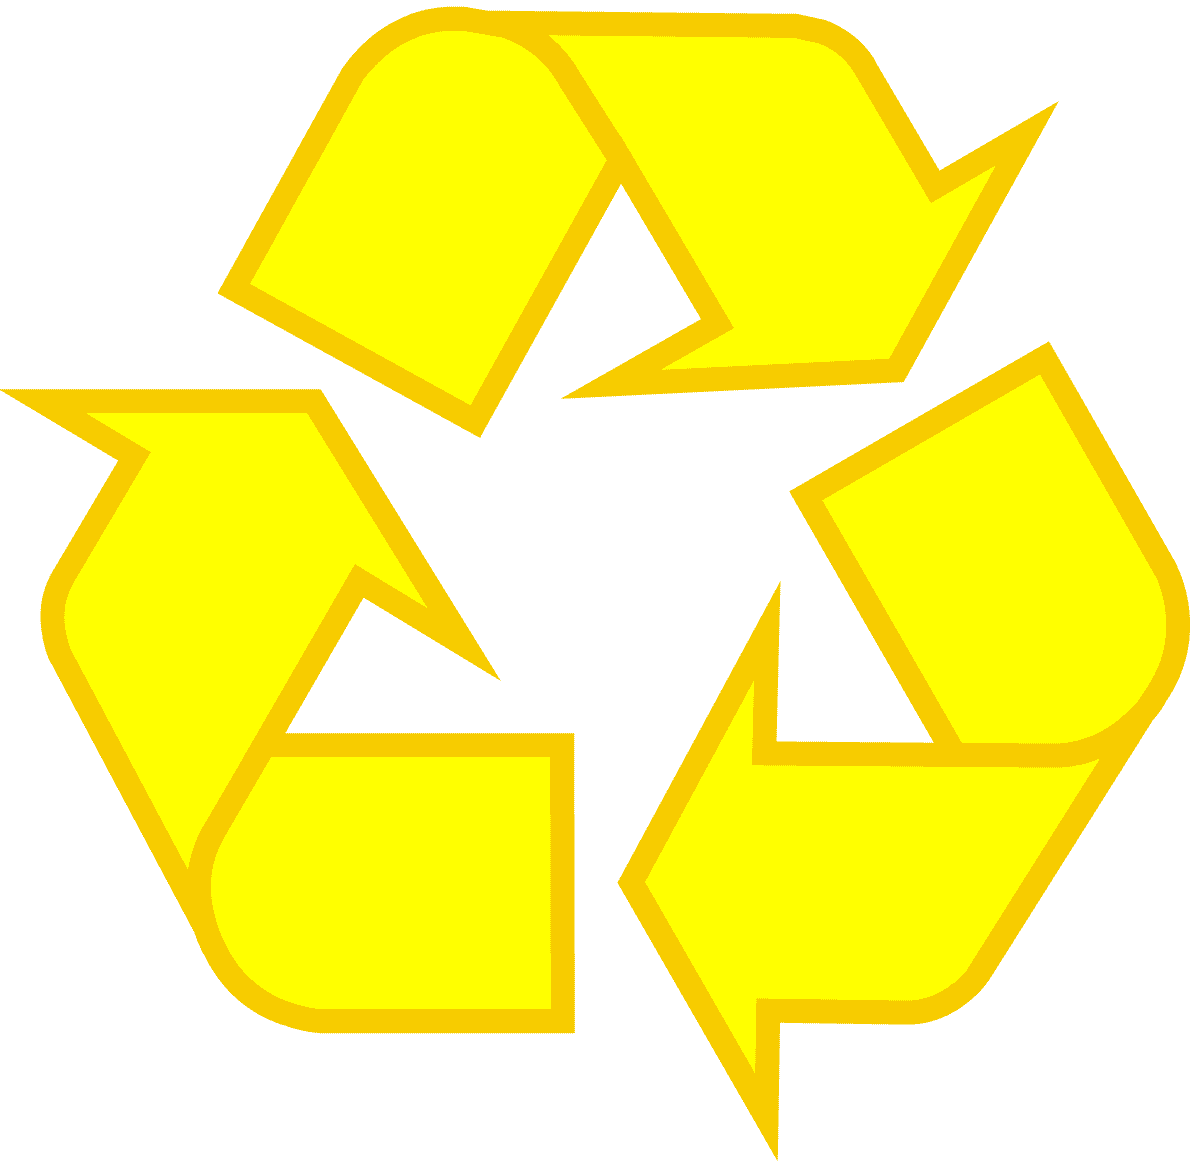 recycling-symbol-icon-outline-solid-yellow